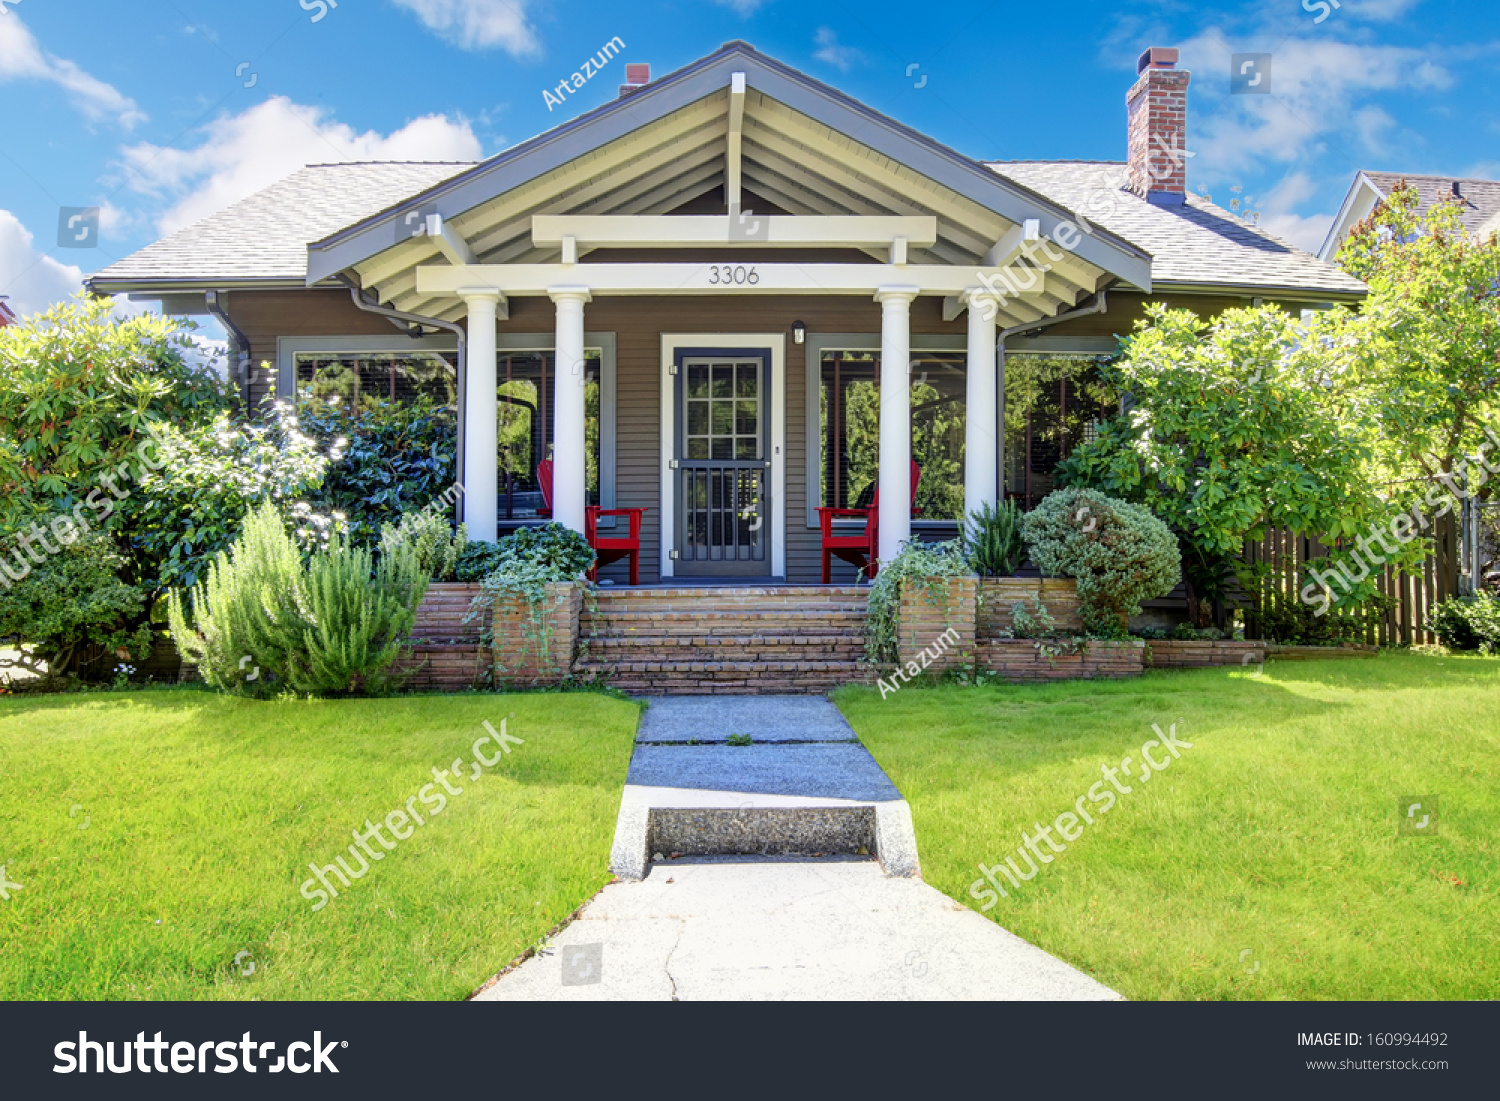 Covered front porch craftsman style home royalty free stock image - Small Craftsman Style American Old House With Front Porch